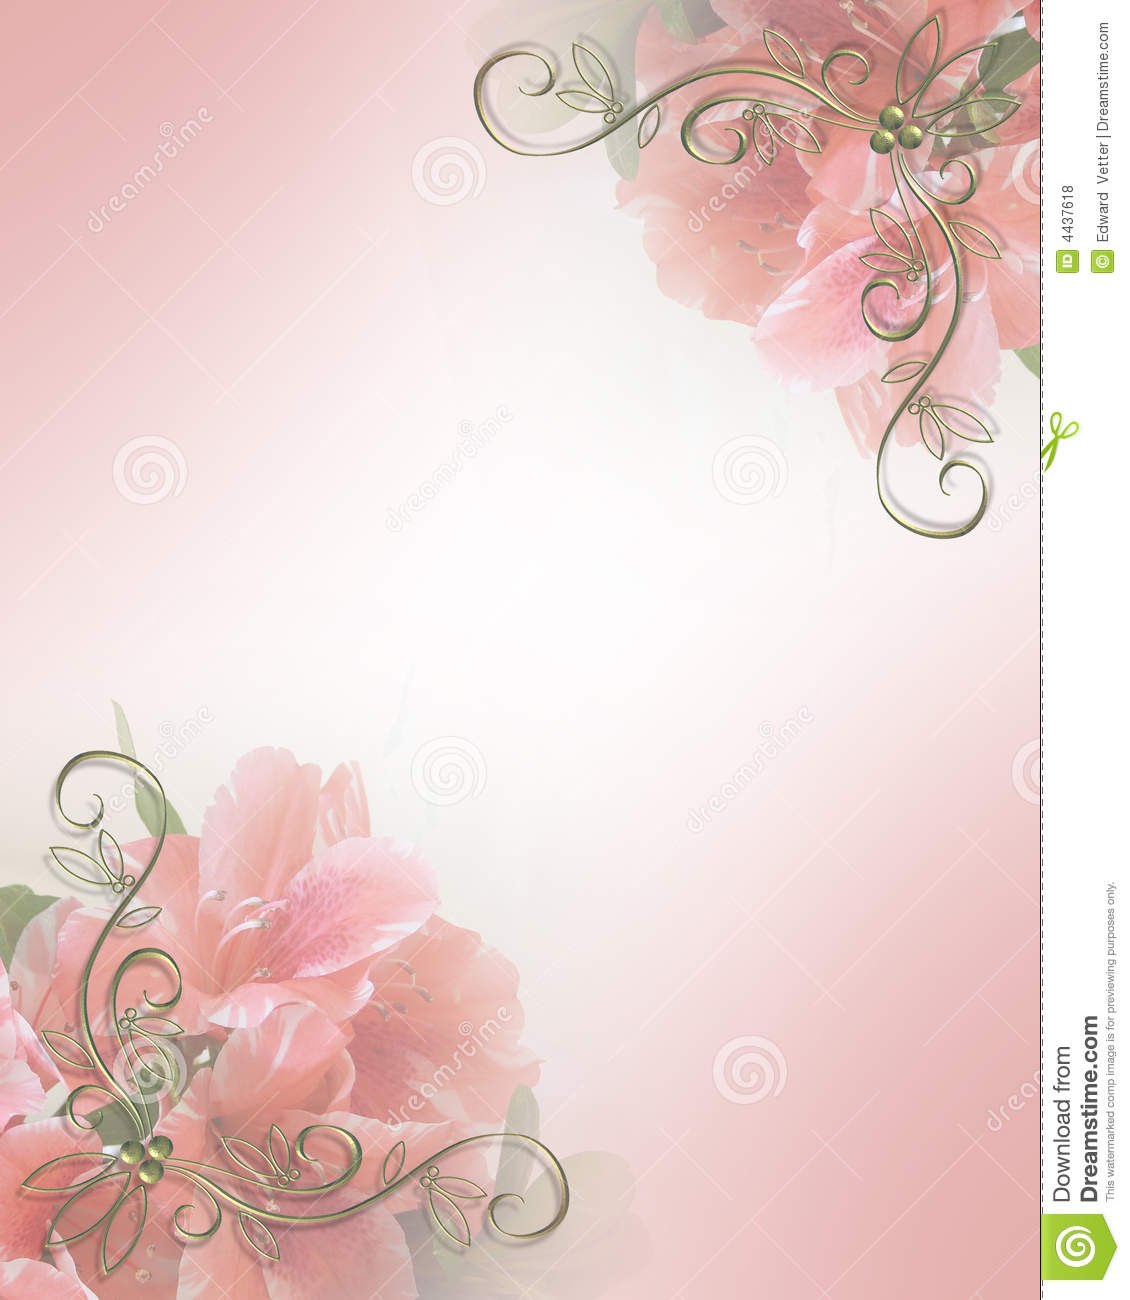 Wedding Invitation Backgrounds: Expensive Wedding Invitation For You: Background Designs